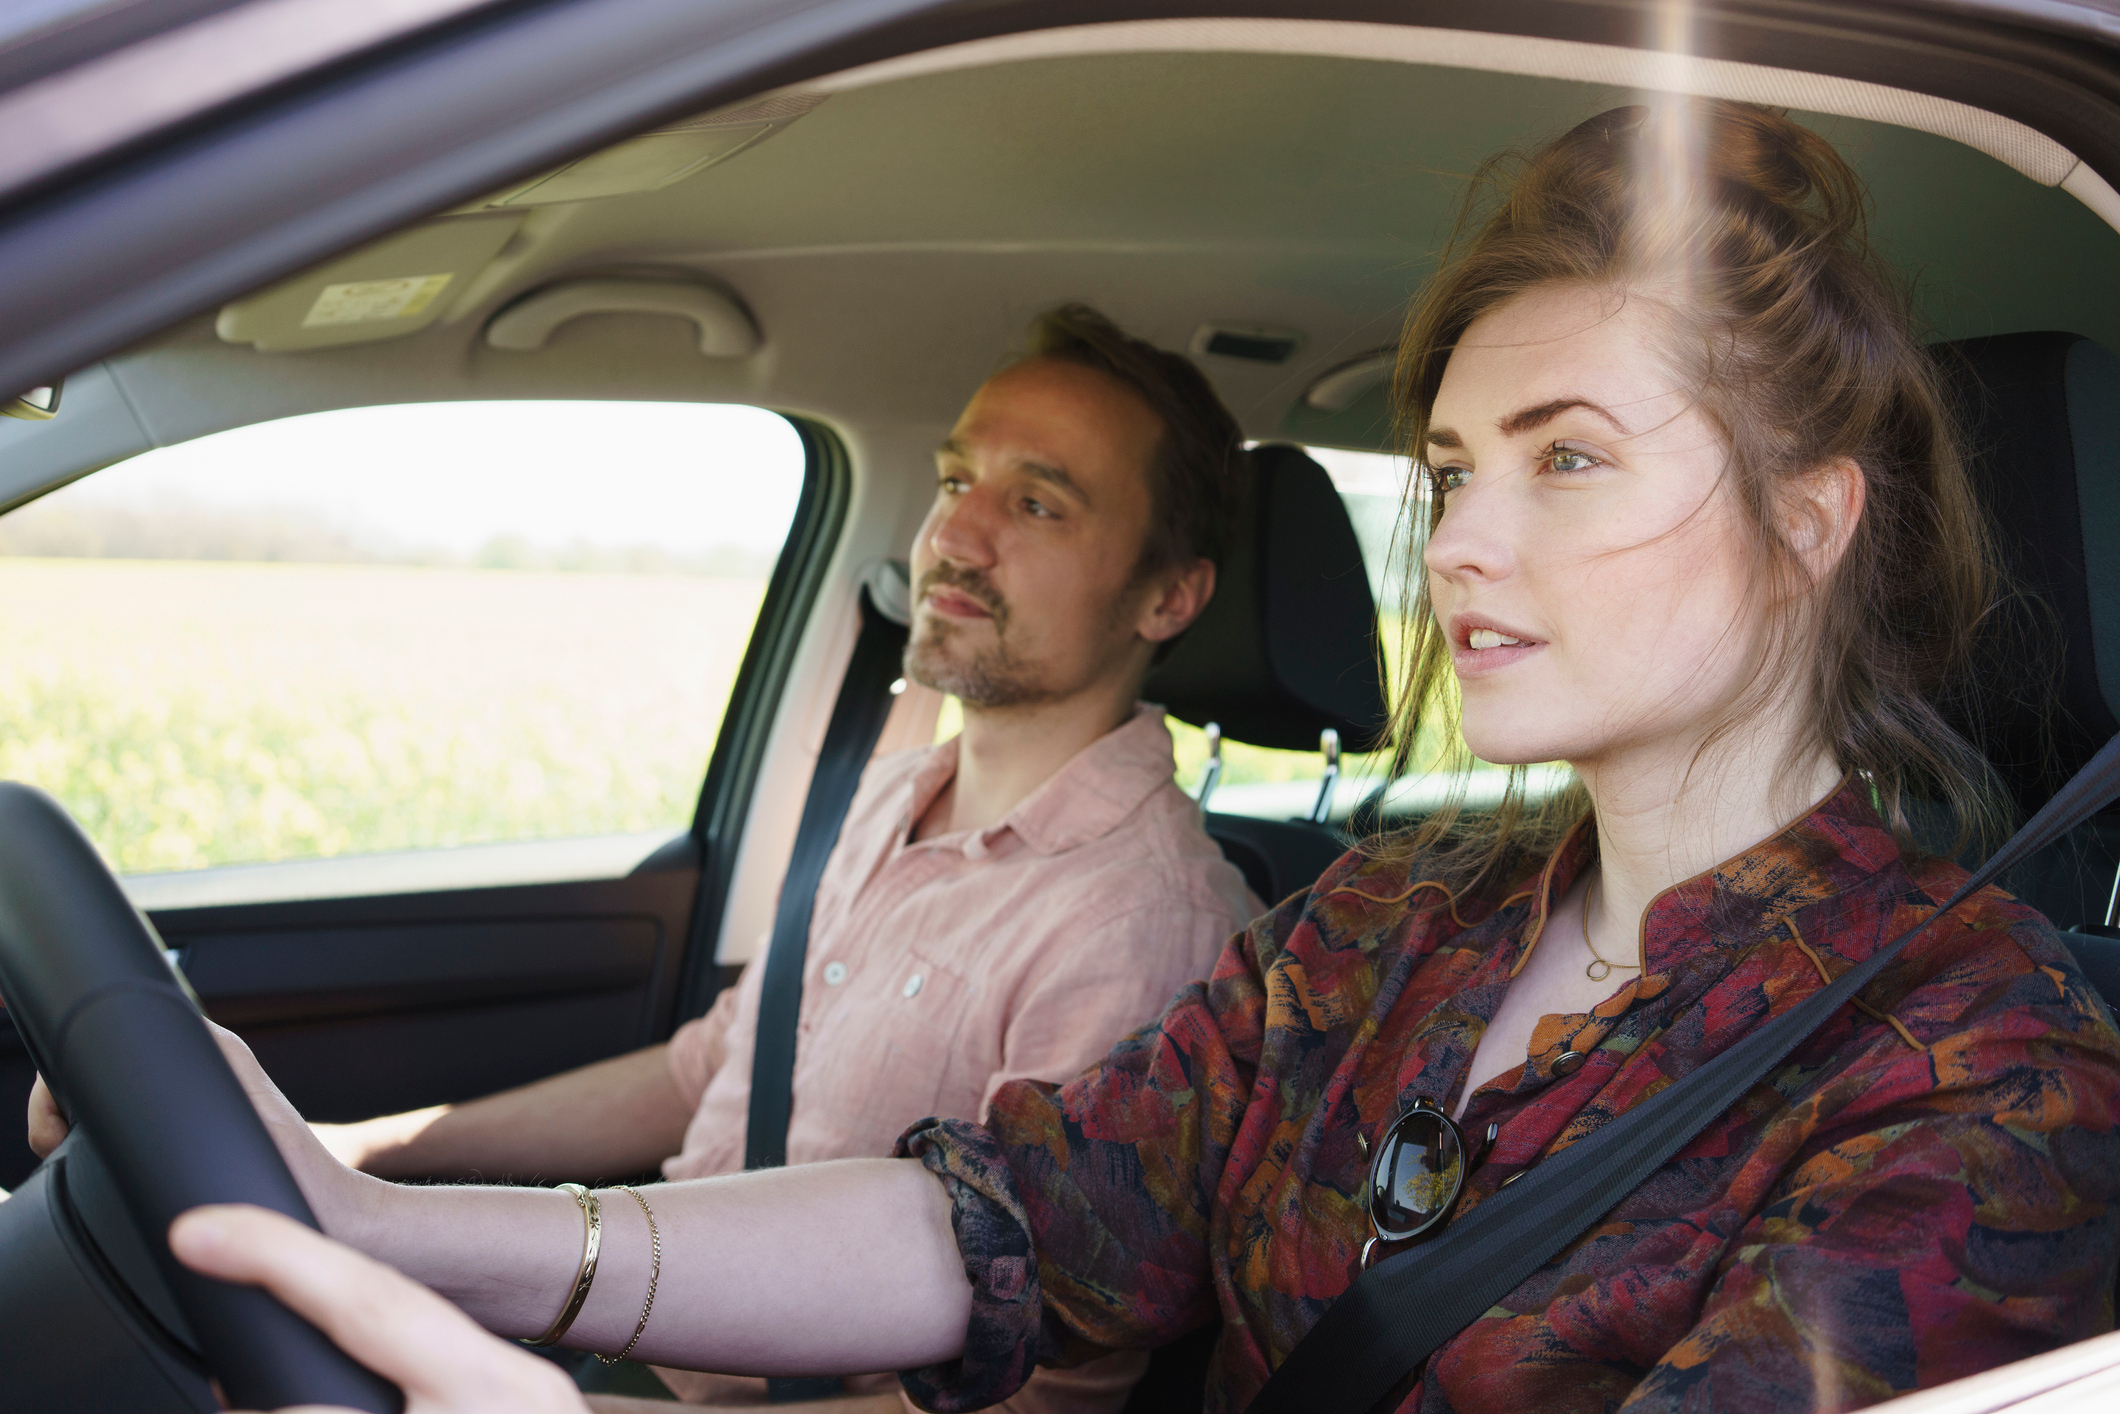 Seven new driving laws are coming into force next month